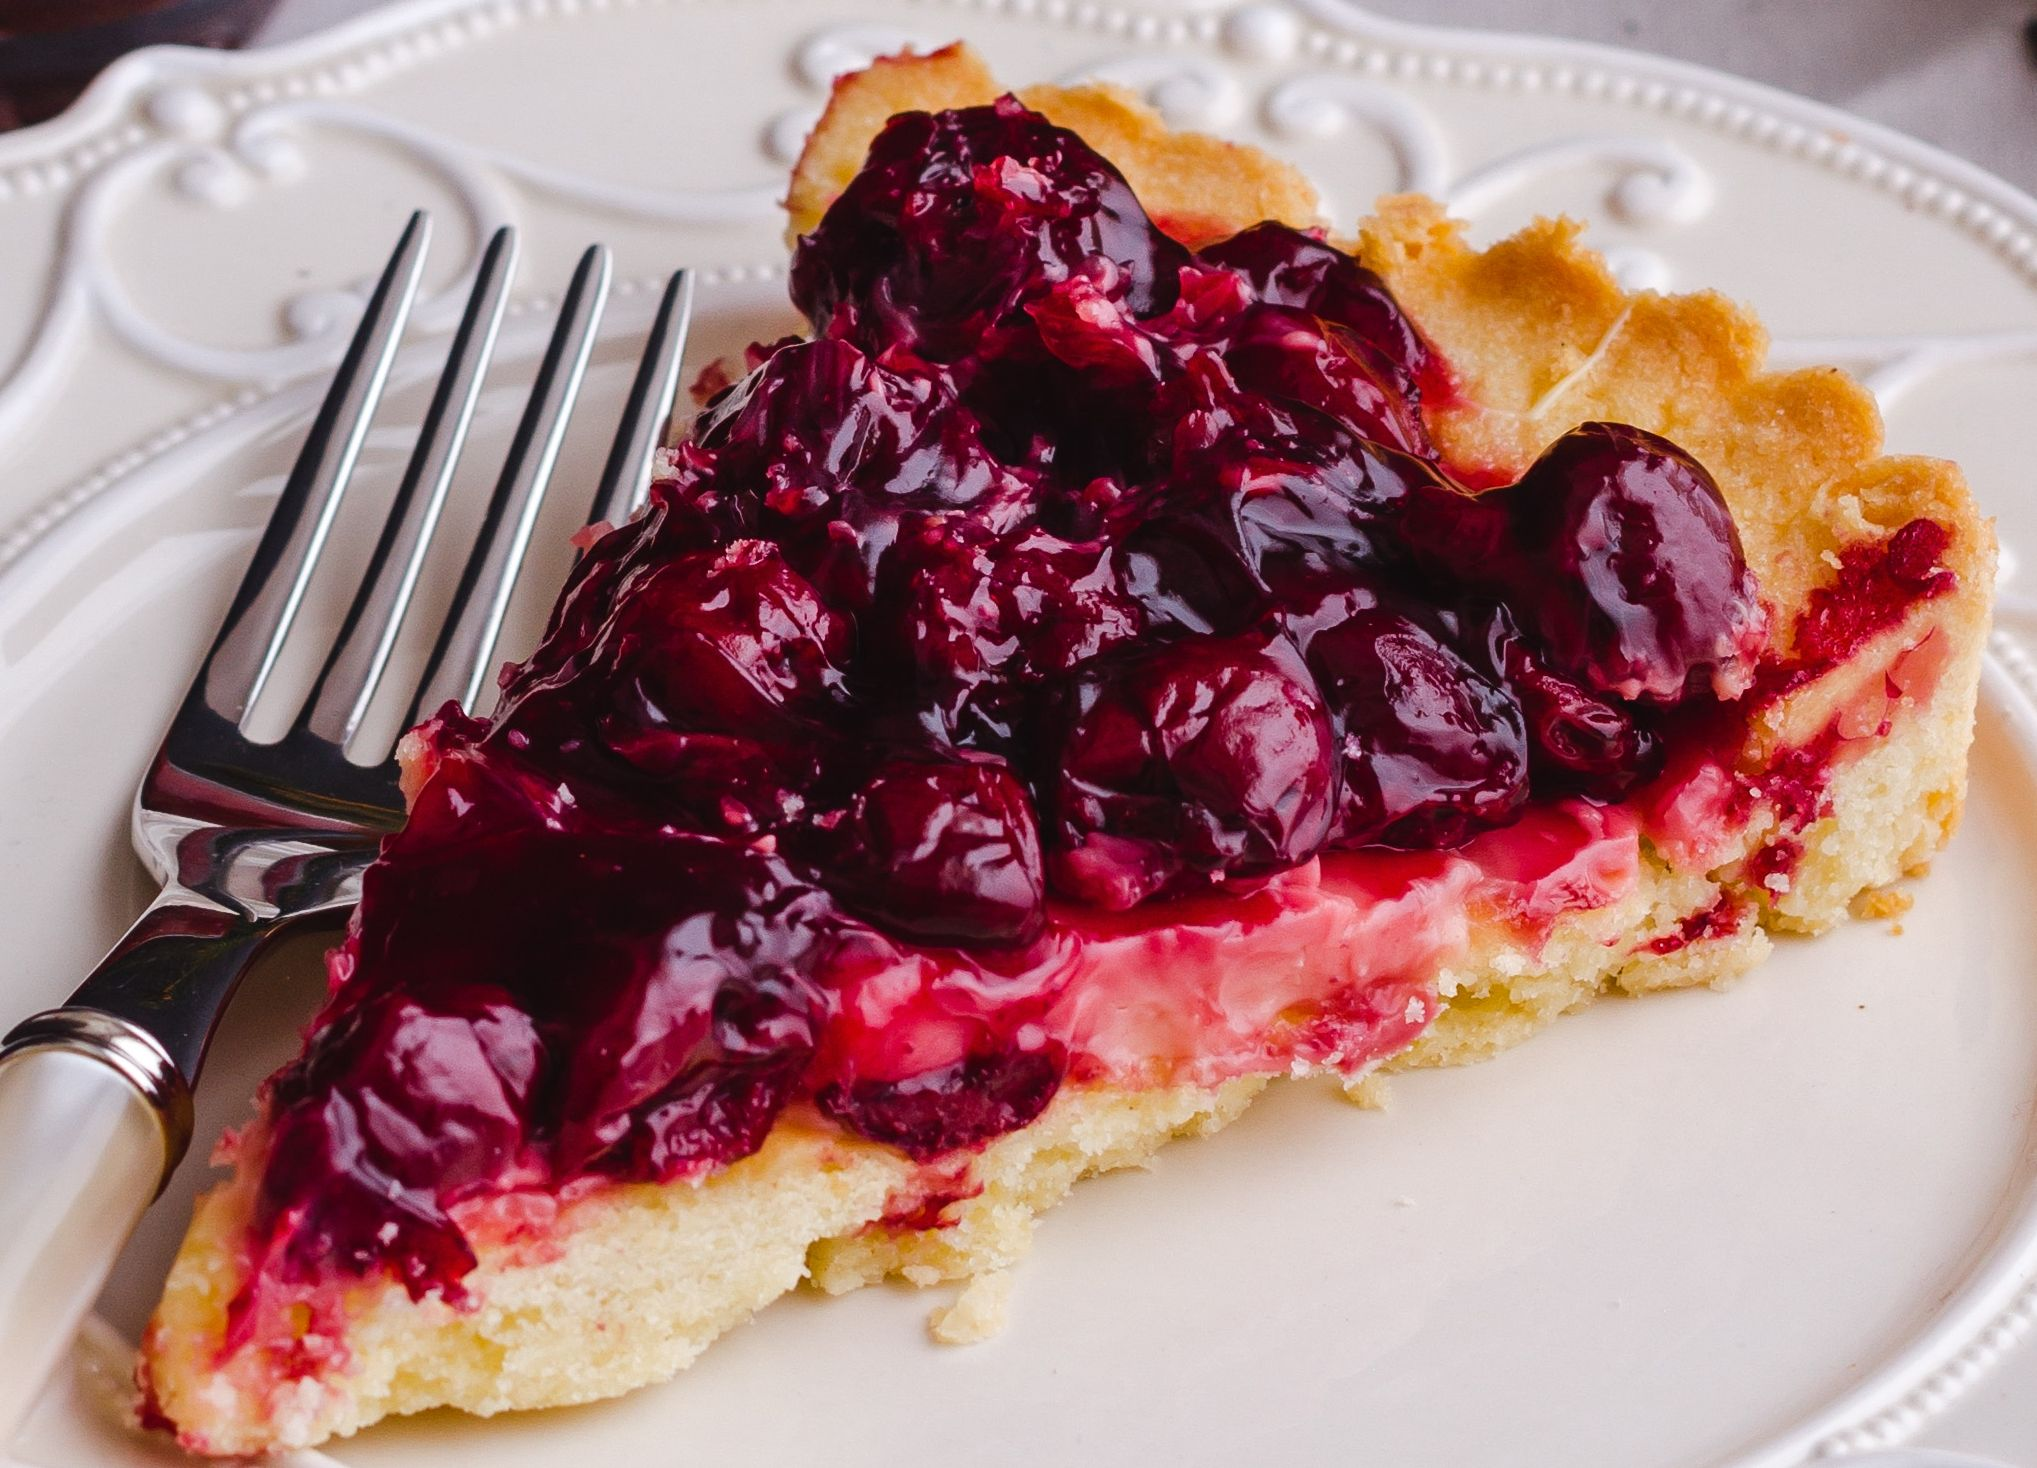 How To Make Mixed Berry Cobbler